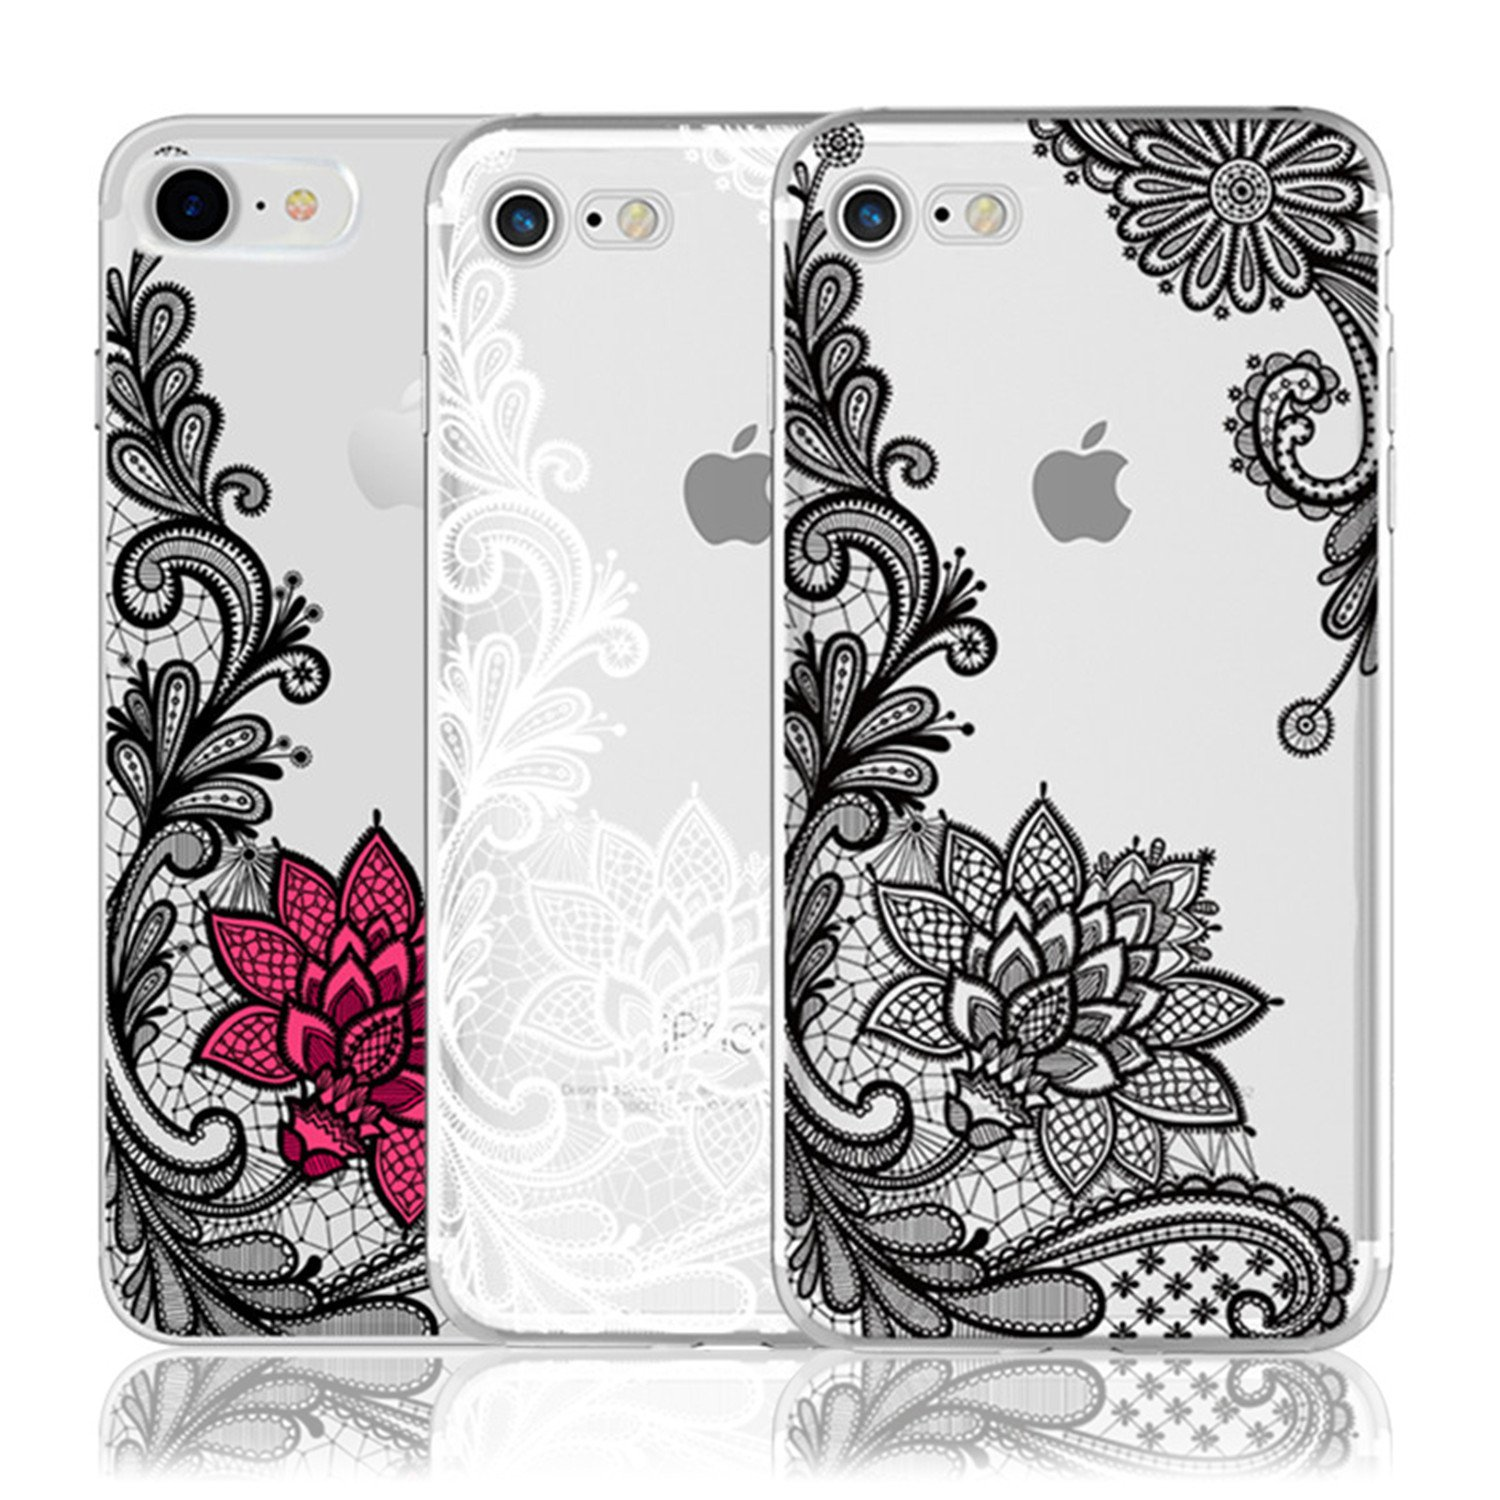 Amazon.com: Coac3 Lace Mandala Case For iPhone X 8 7 6 6S ...